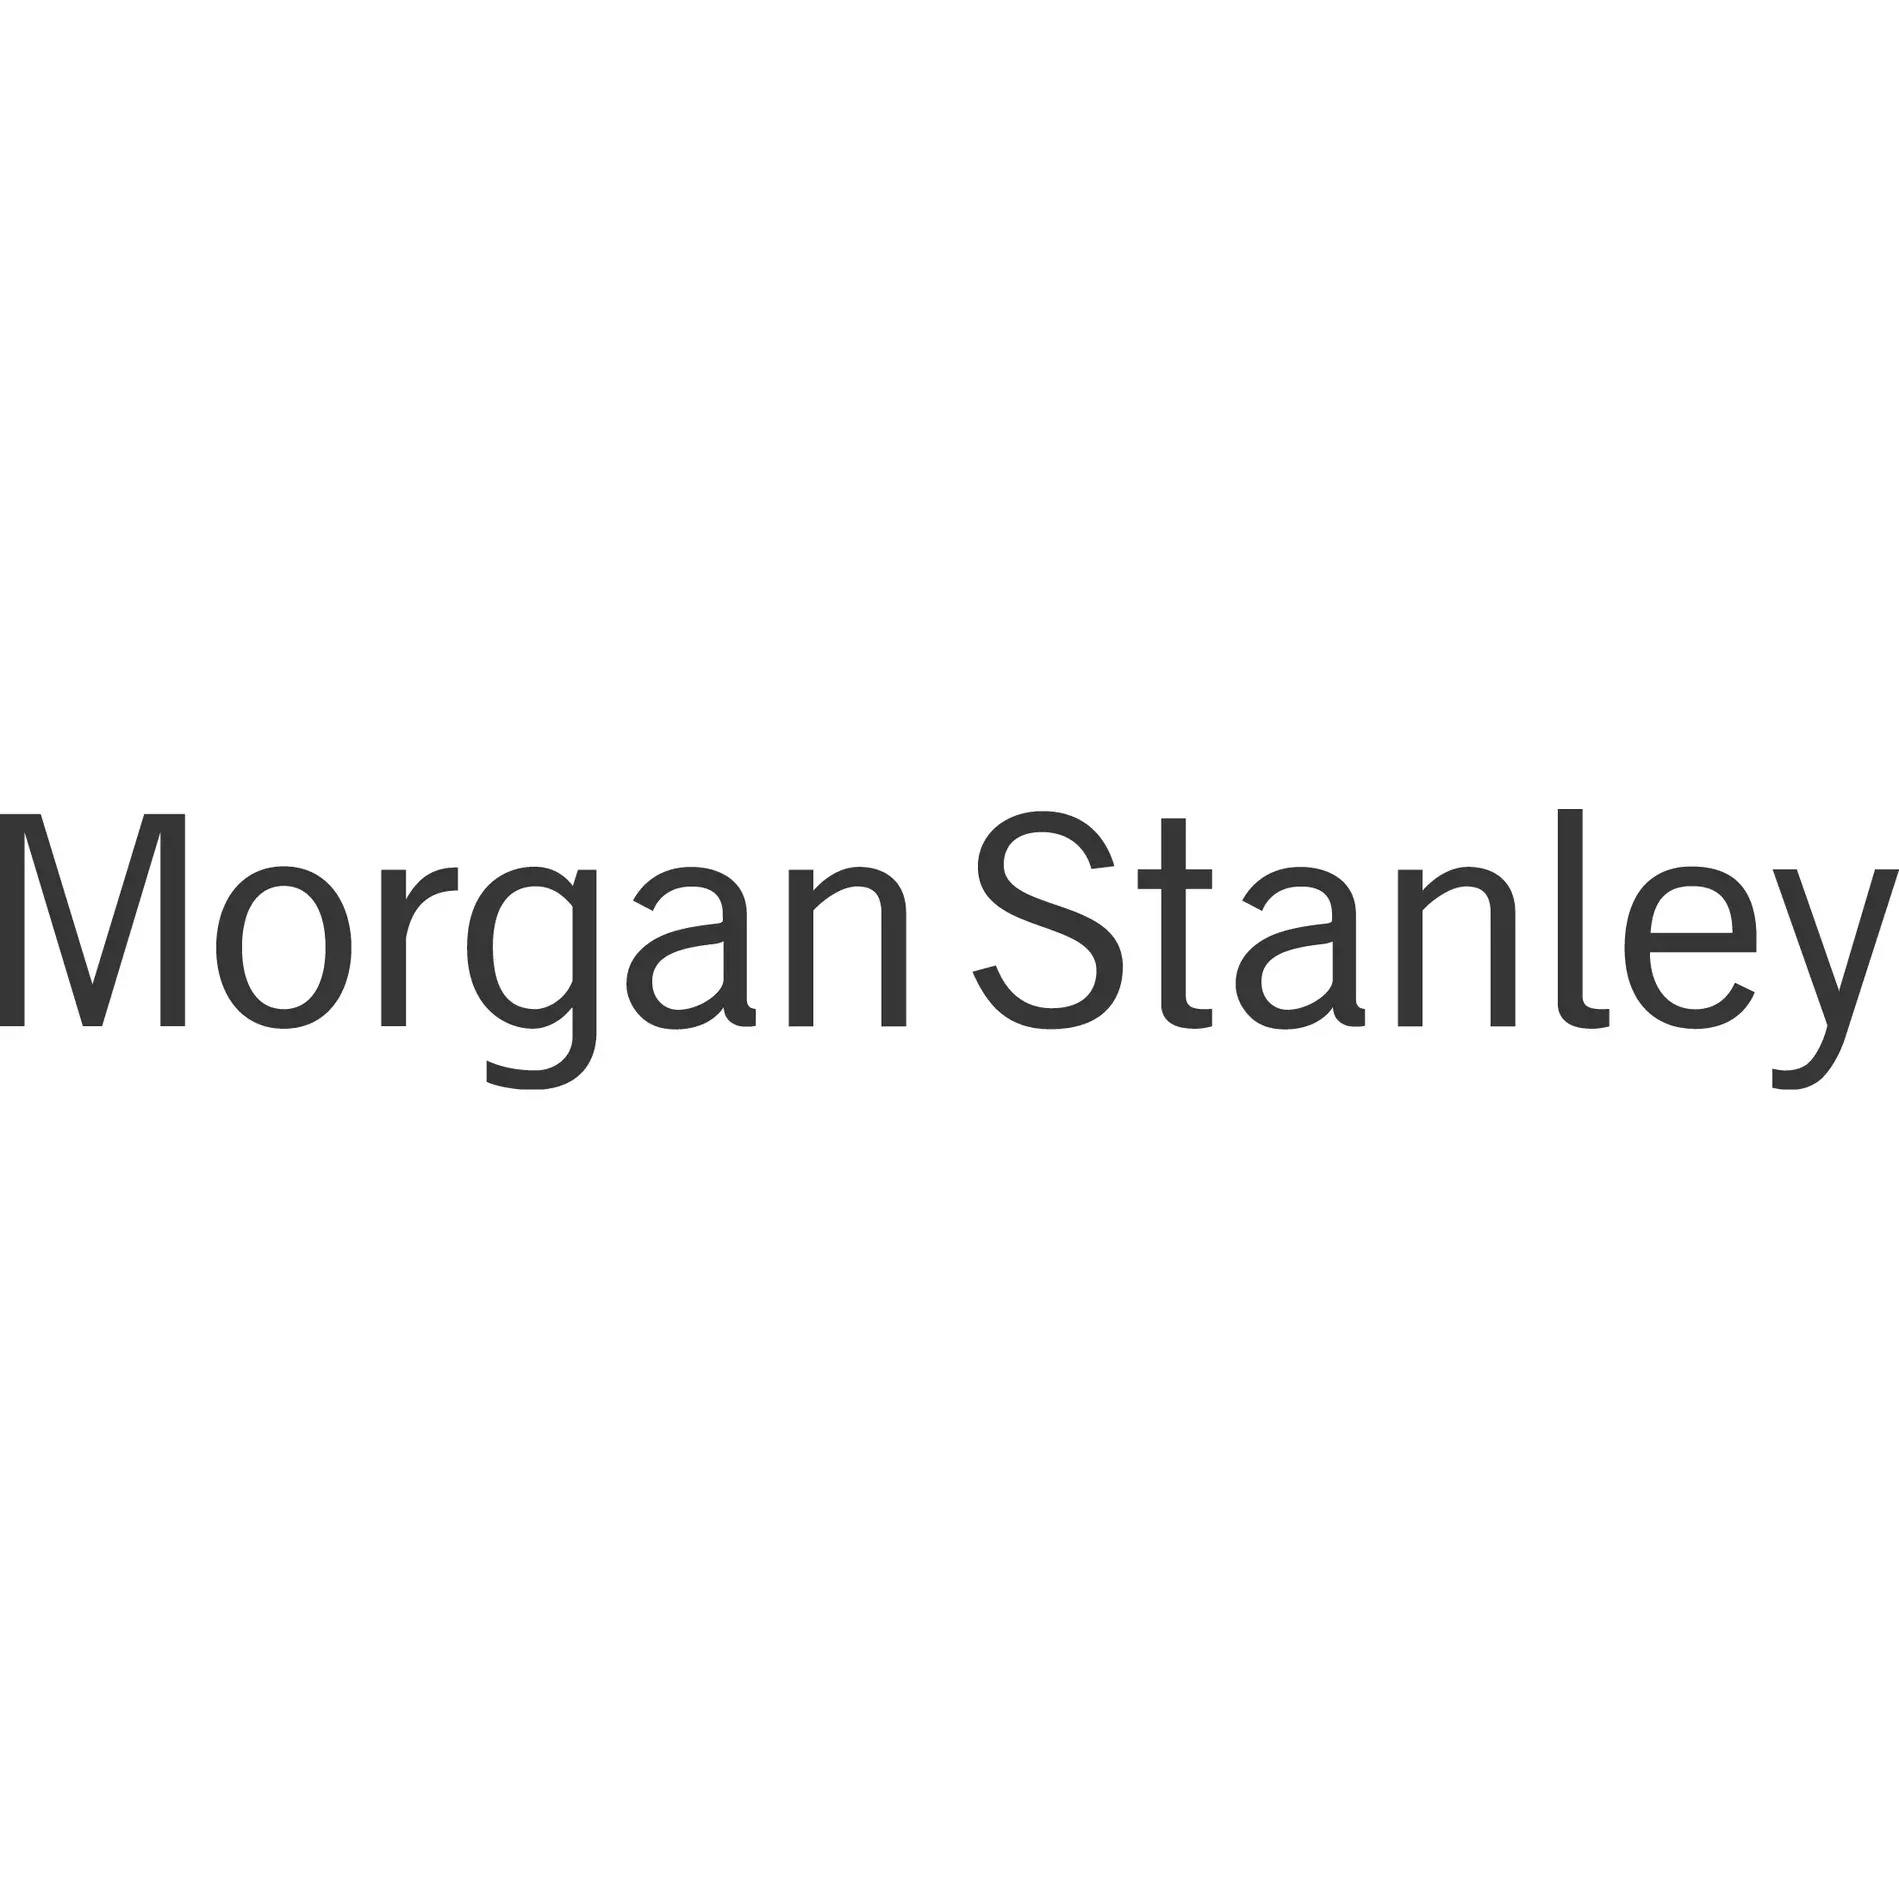 The Chicago Skyline Group - Morgan Stanley | Financial Advisor in Orland Park,Illinois